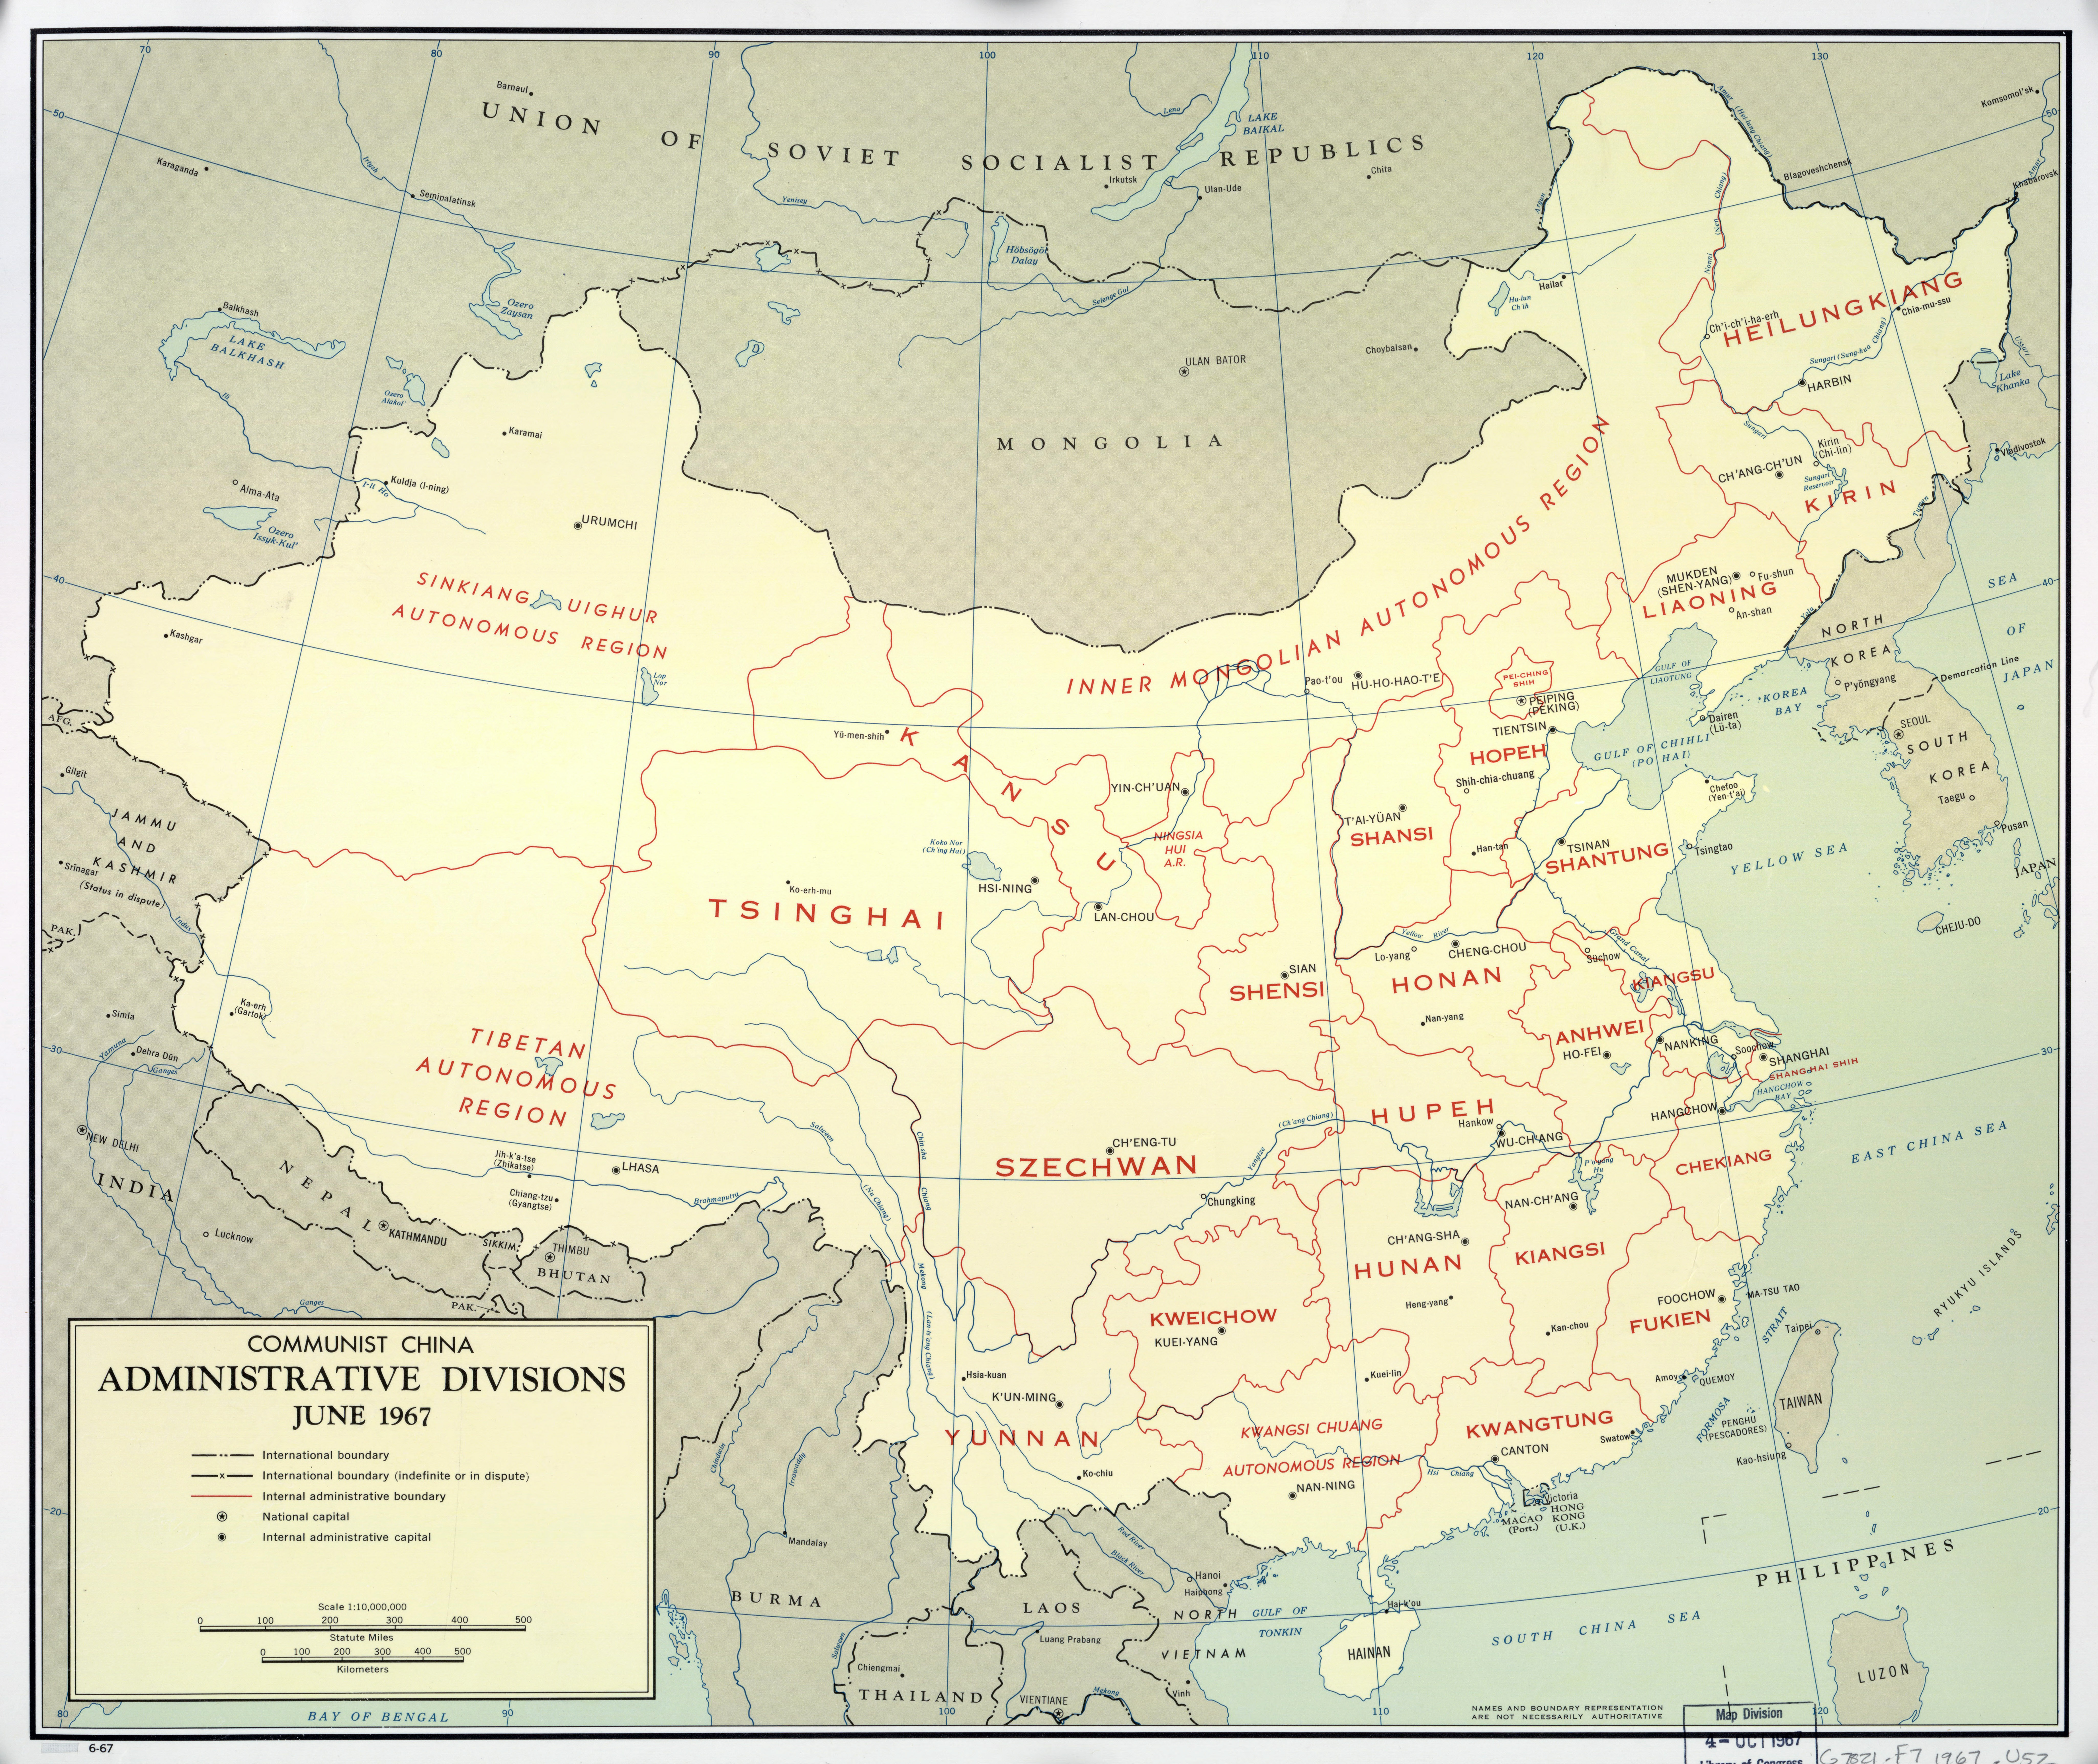 Large scale Communist China administrative divisions map 1967